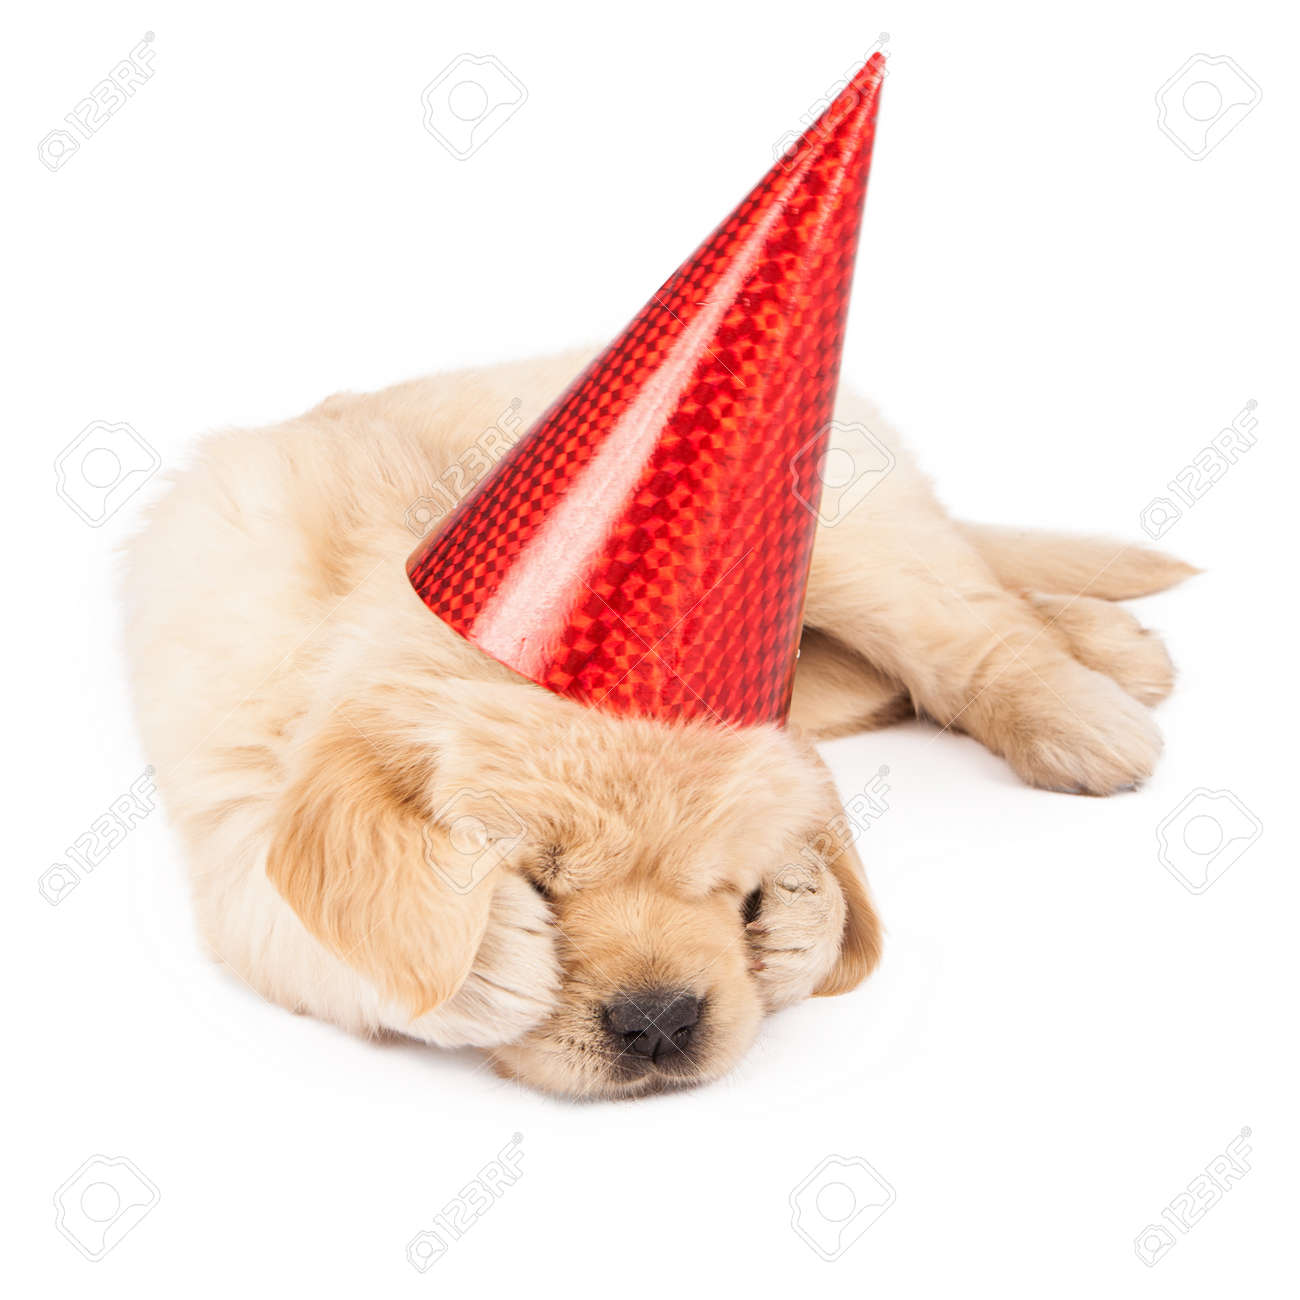 A Cute Little Golden Retriever Puppy Wearing A Red Party Hat Stock